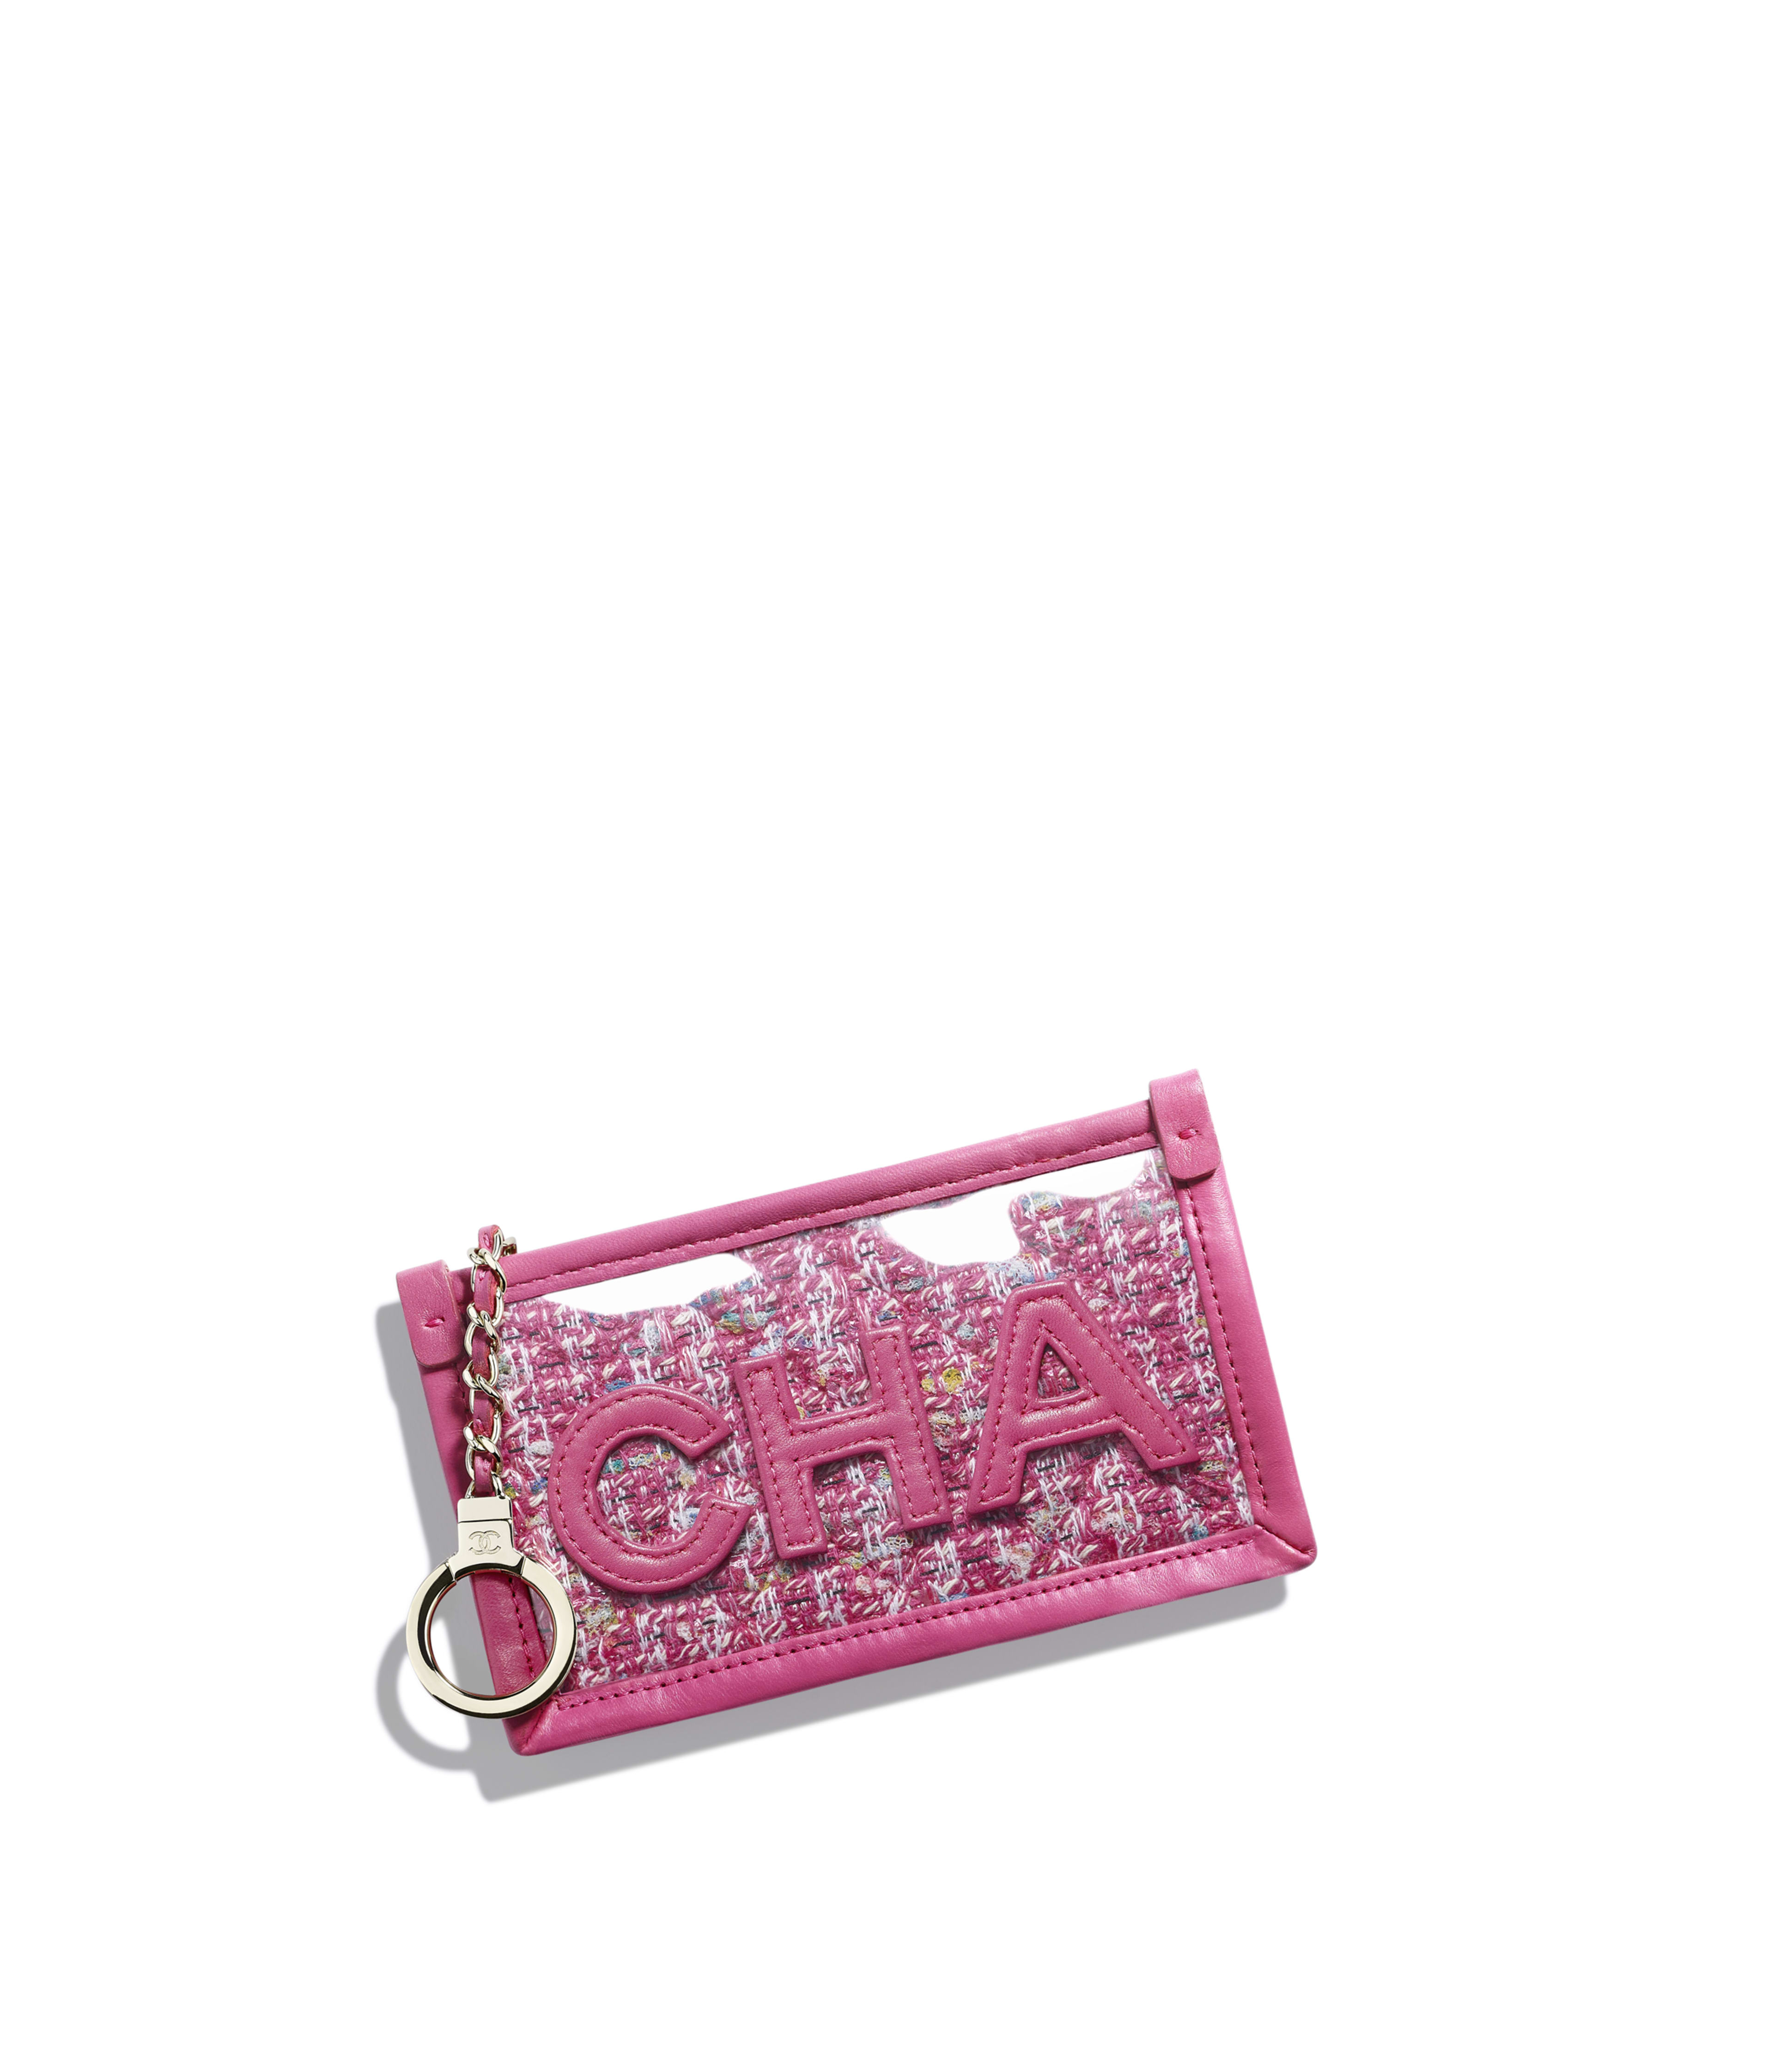 93d0aa77014f Zipped Key Holder Tweed, PVC, Lambskin & Gold-Tone Metal, Pink, Blue, White  & Ochre Ref. AP0254B00478N4449